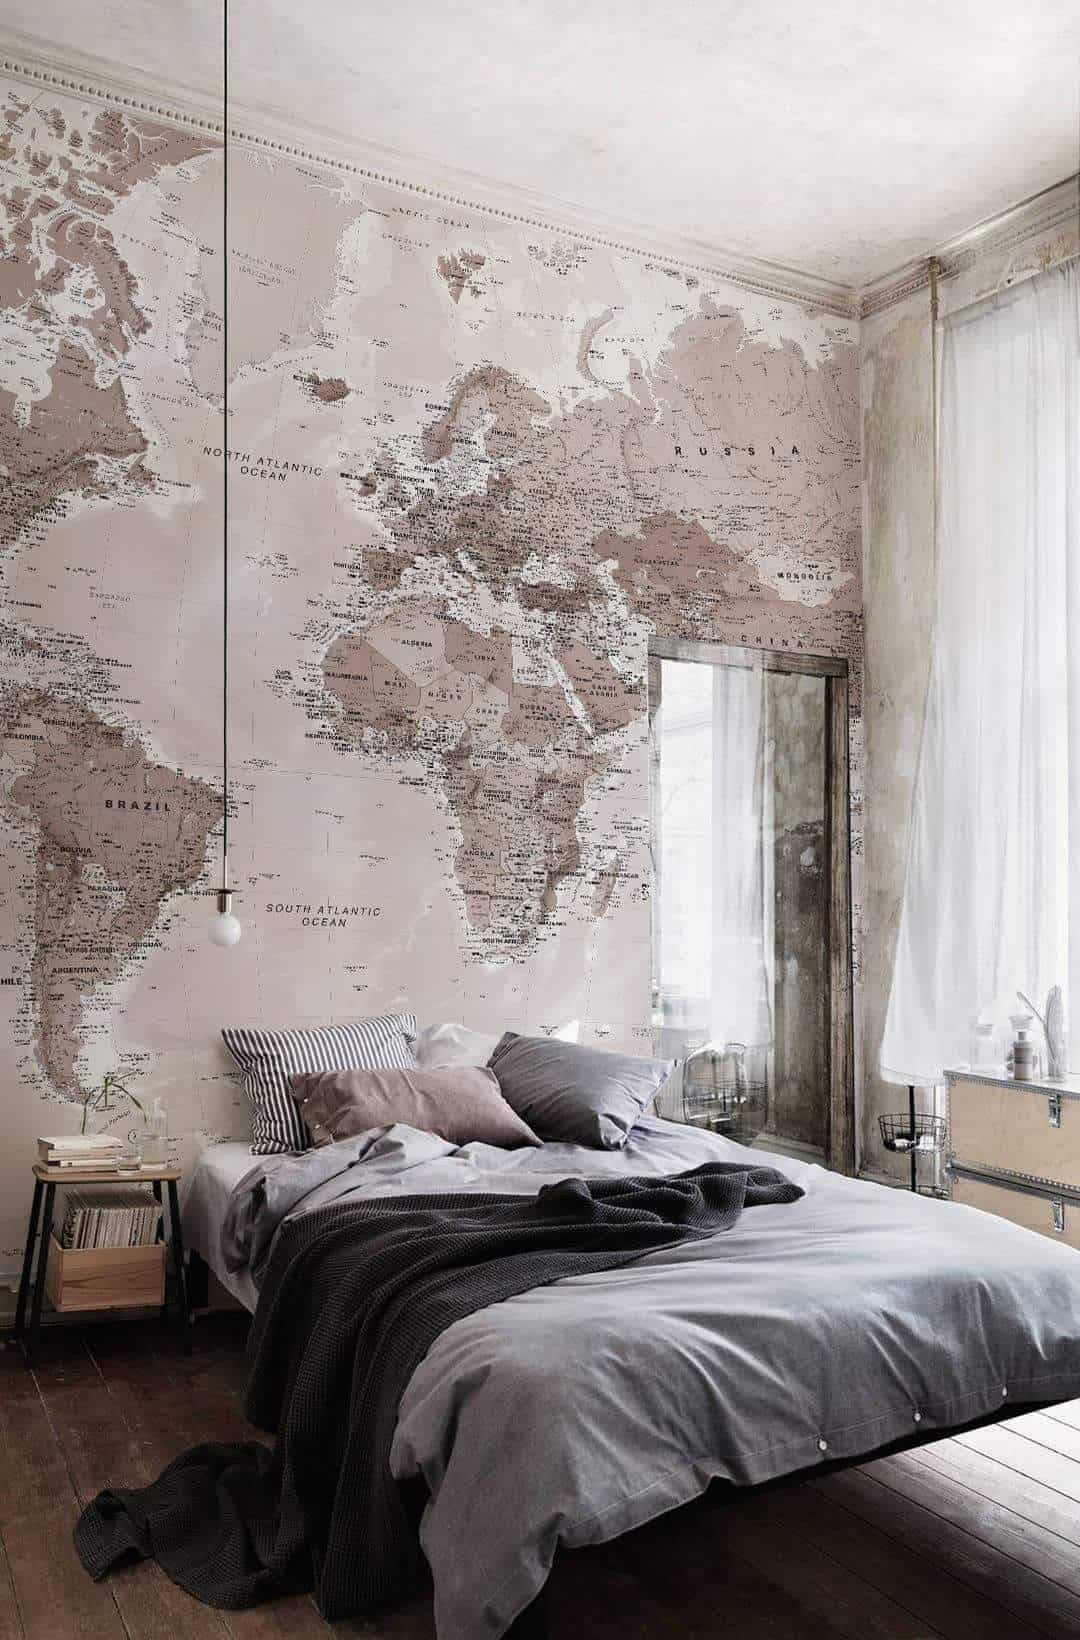 Fall asleep with the world at your feet!